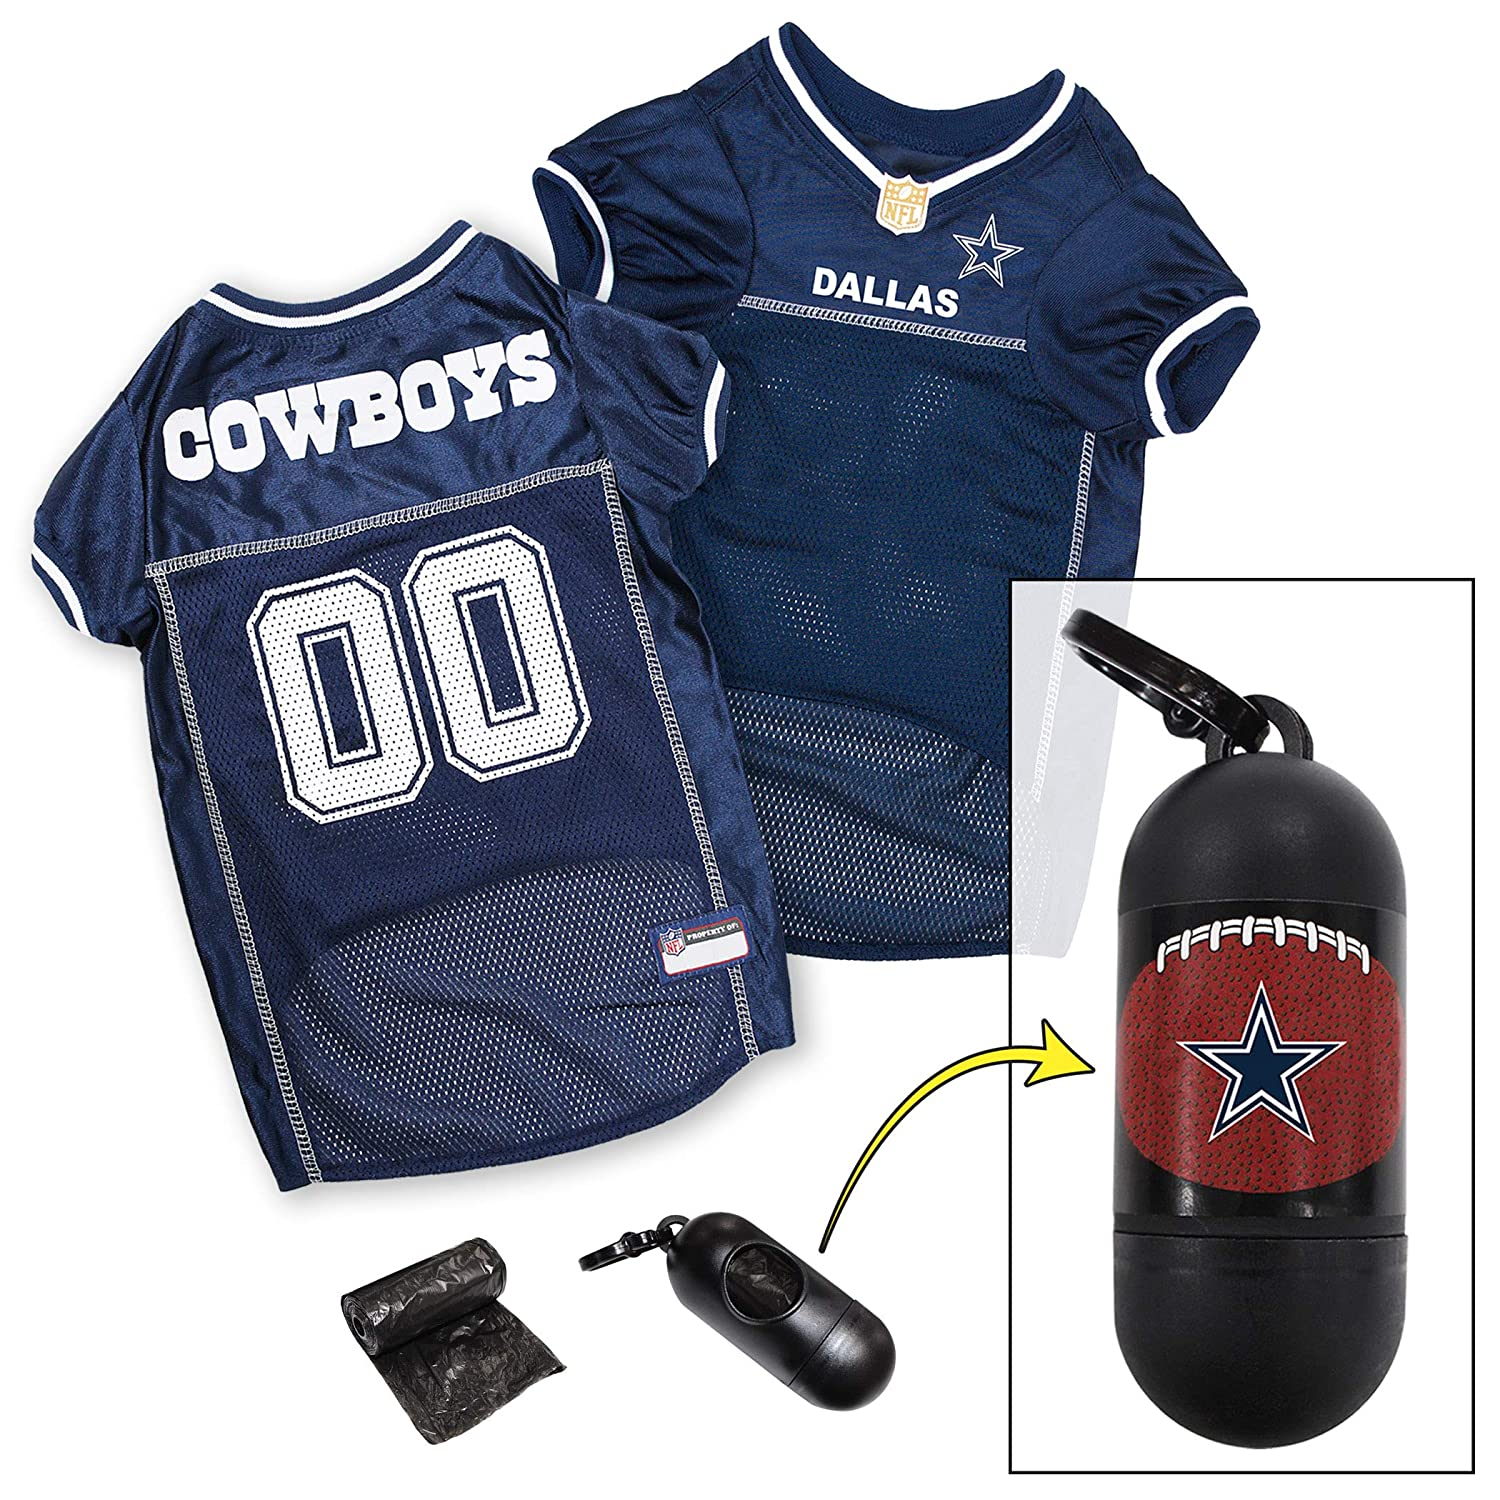 huge selection of 1ac15 200b5 NFL PET Jersey. Most Comfortable Football Licensed Dog Jersey. 32 NFL Teams  Available in 7 Sizes. Football Jersey for Dogs, Cats & Animals. - Sports ...